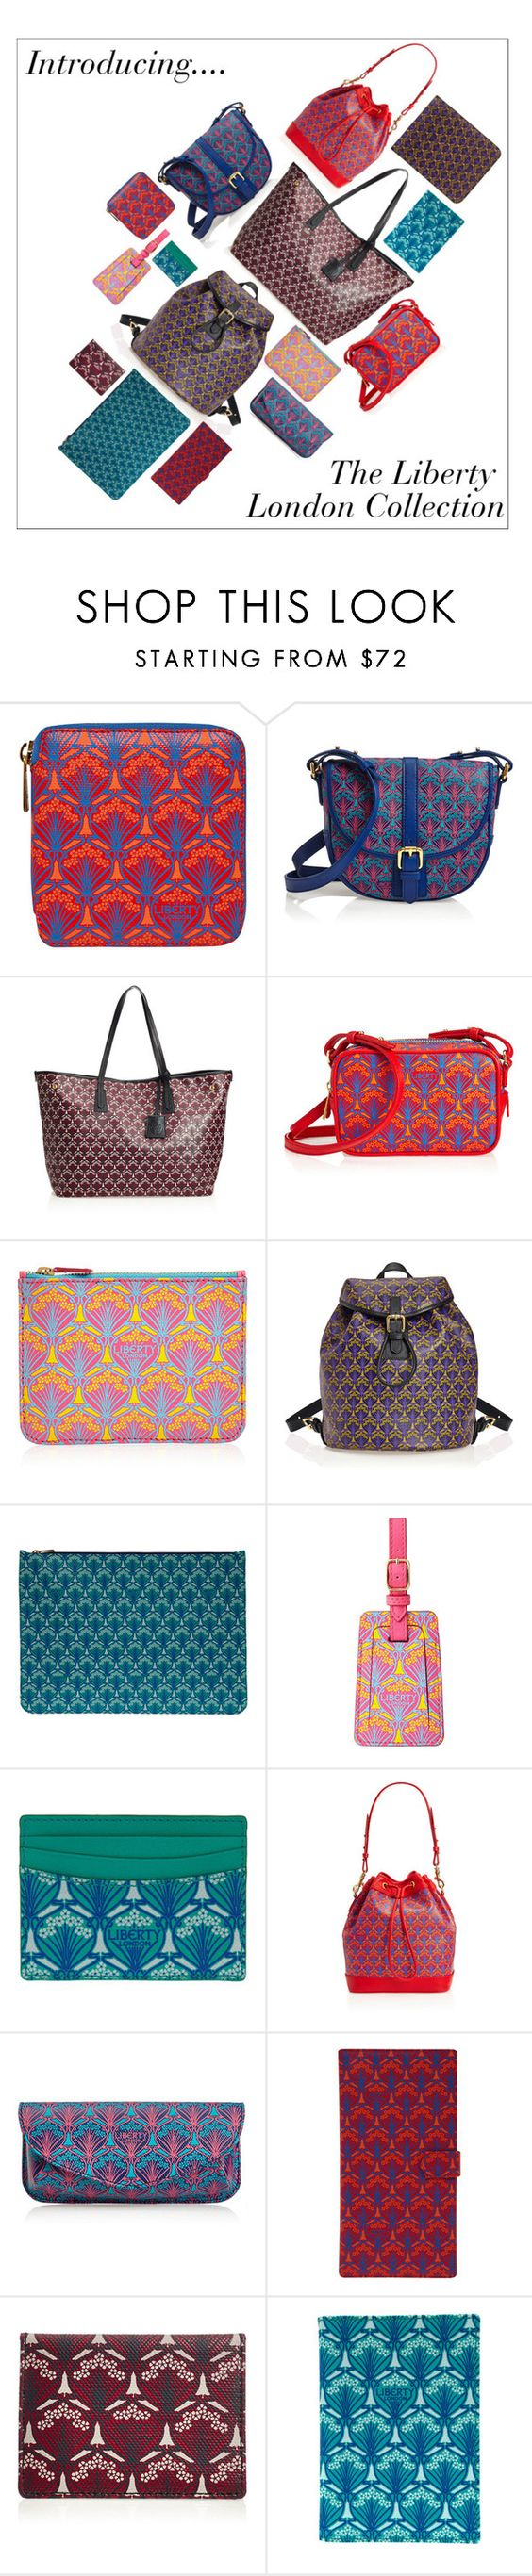 """""""Introducing the Liberty London Collection"""" by liberty-london ❤ liked on Polyvore featuring Liberty, bag and libertyprint"""